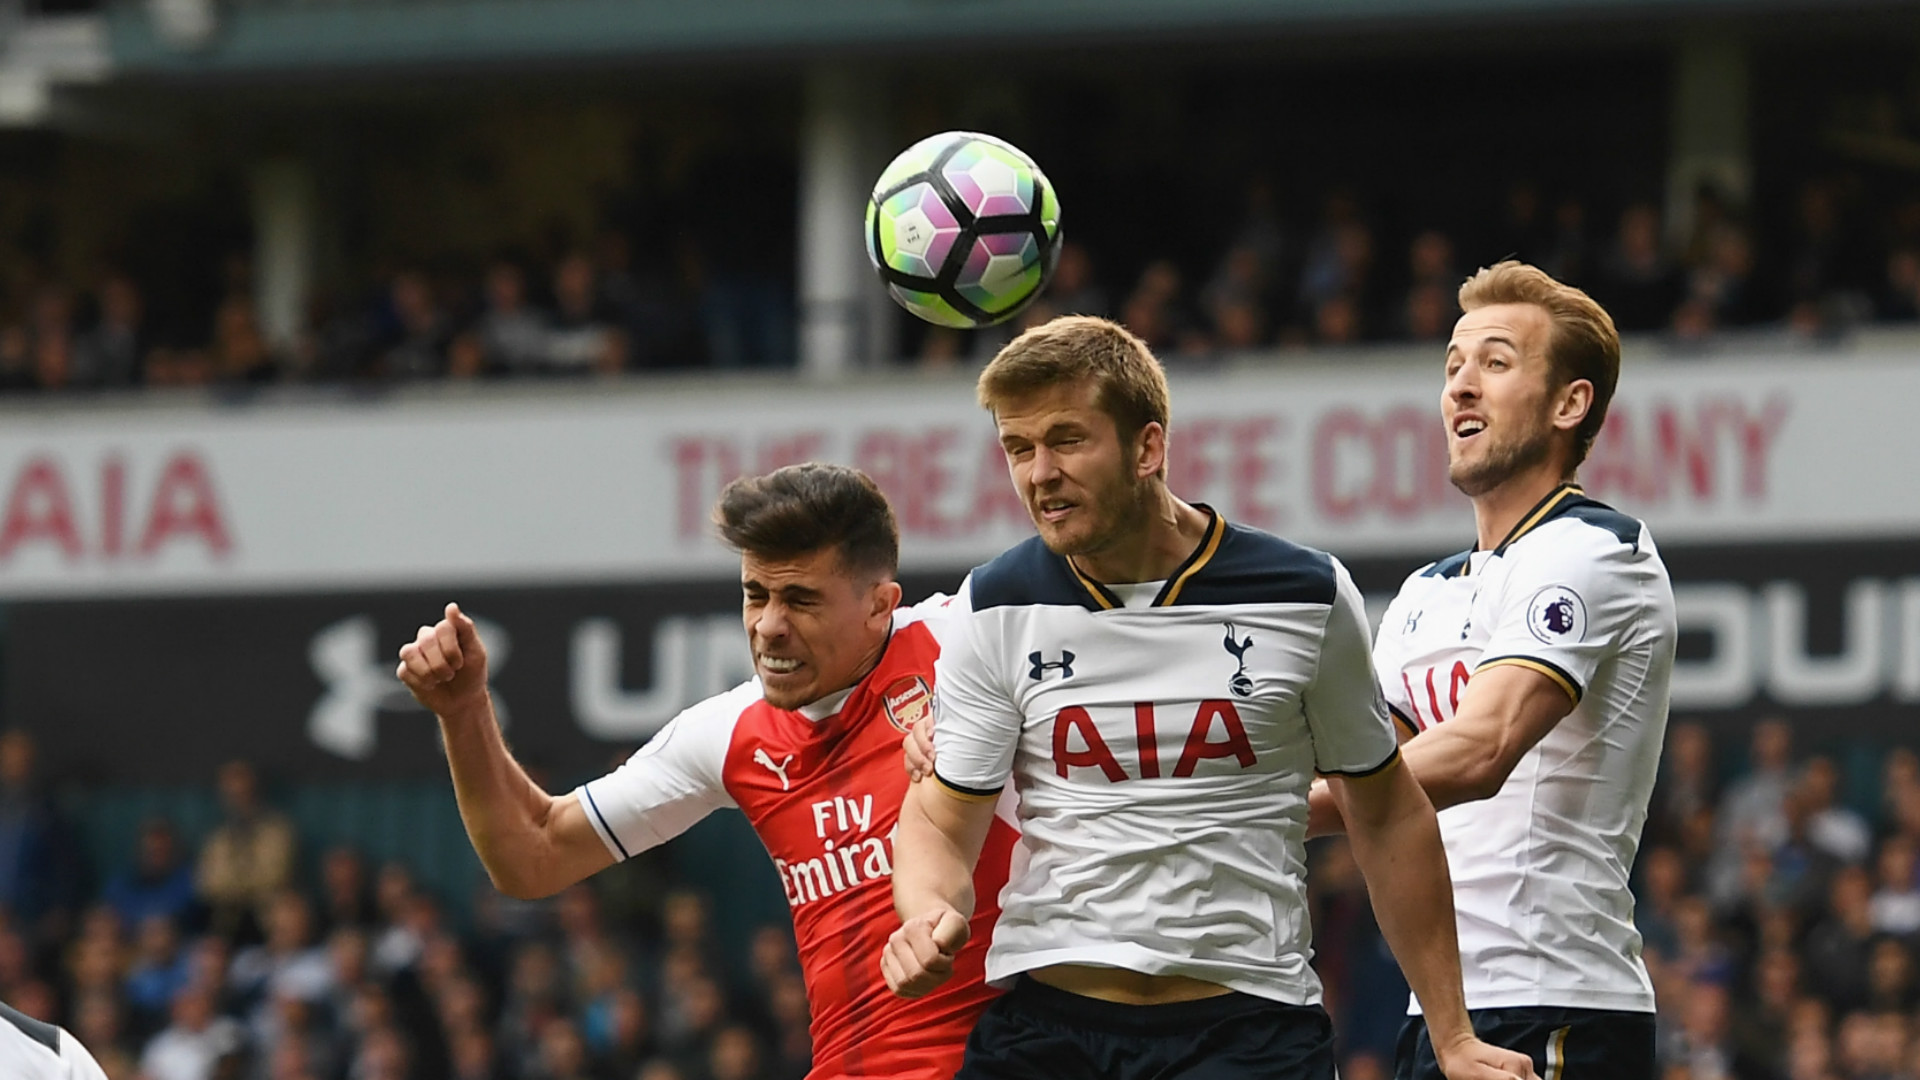 Gunners legend Martin Keown gives his Premier League prediction — Arsenal vs Tottenham